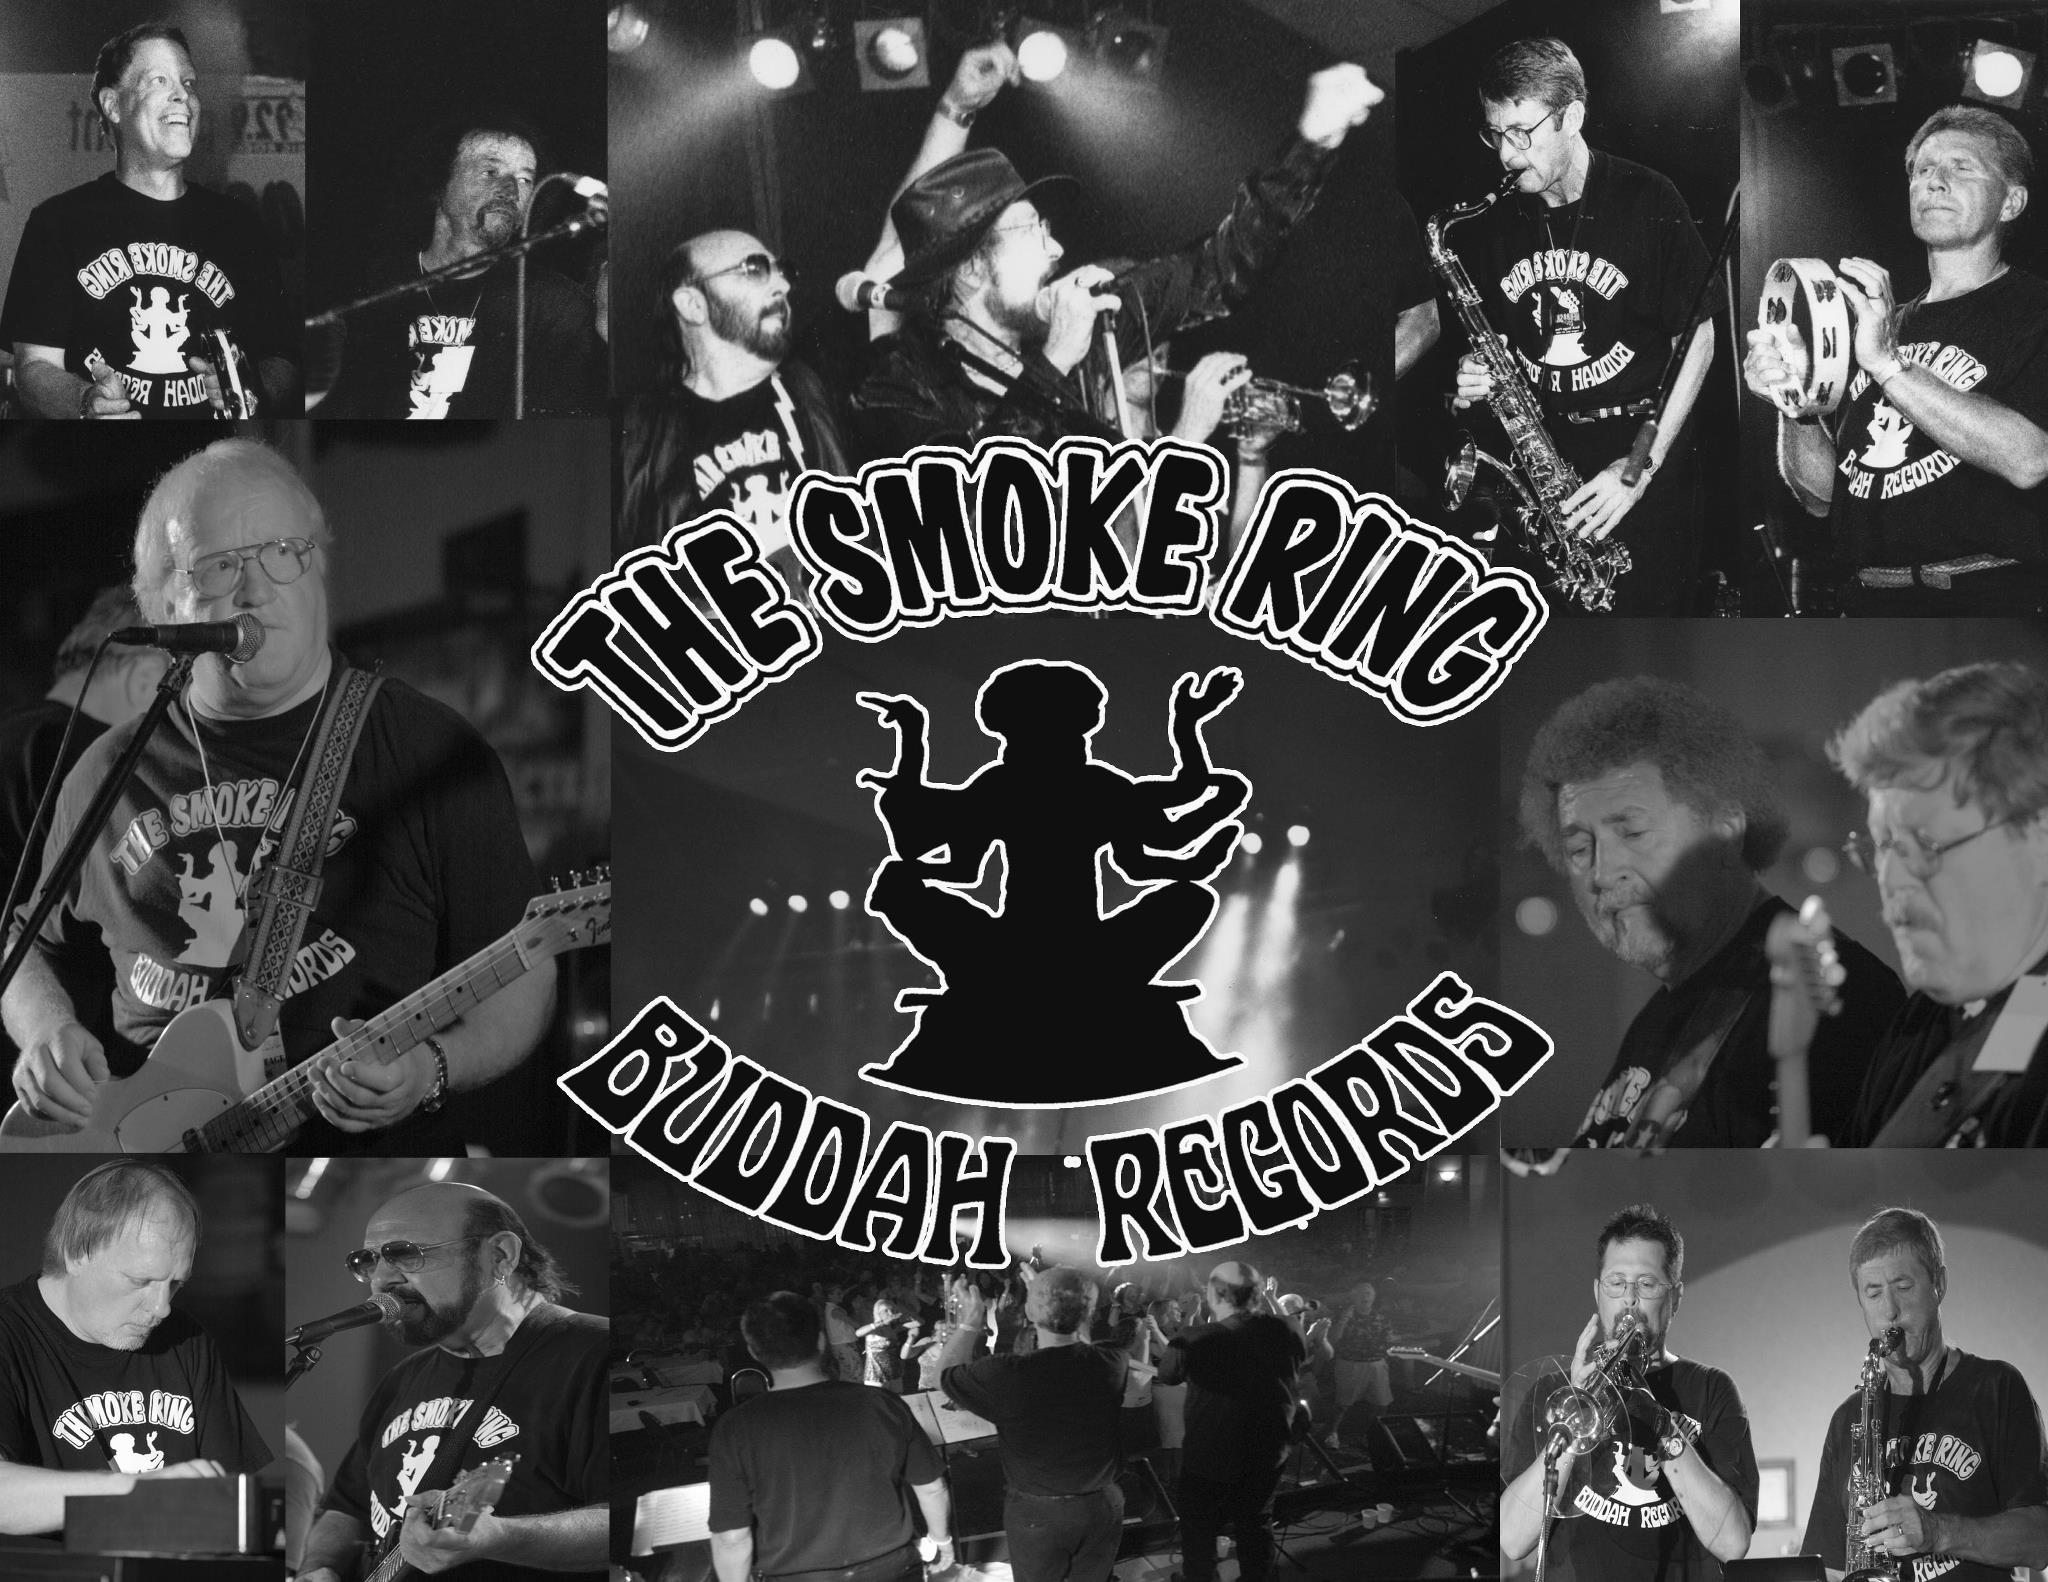 Live Music & Dance featuring The Smoke Ring at The Pilger Street Dance in Pilger, Nebraska - 